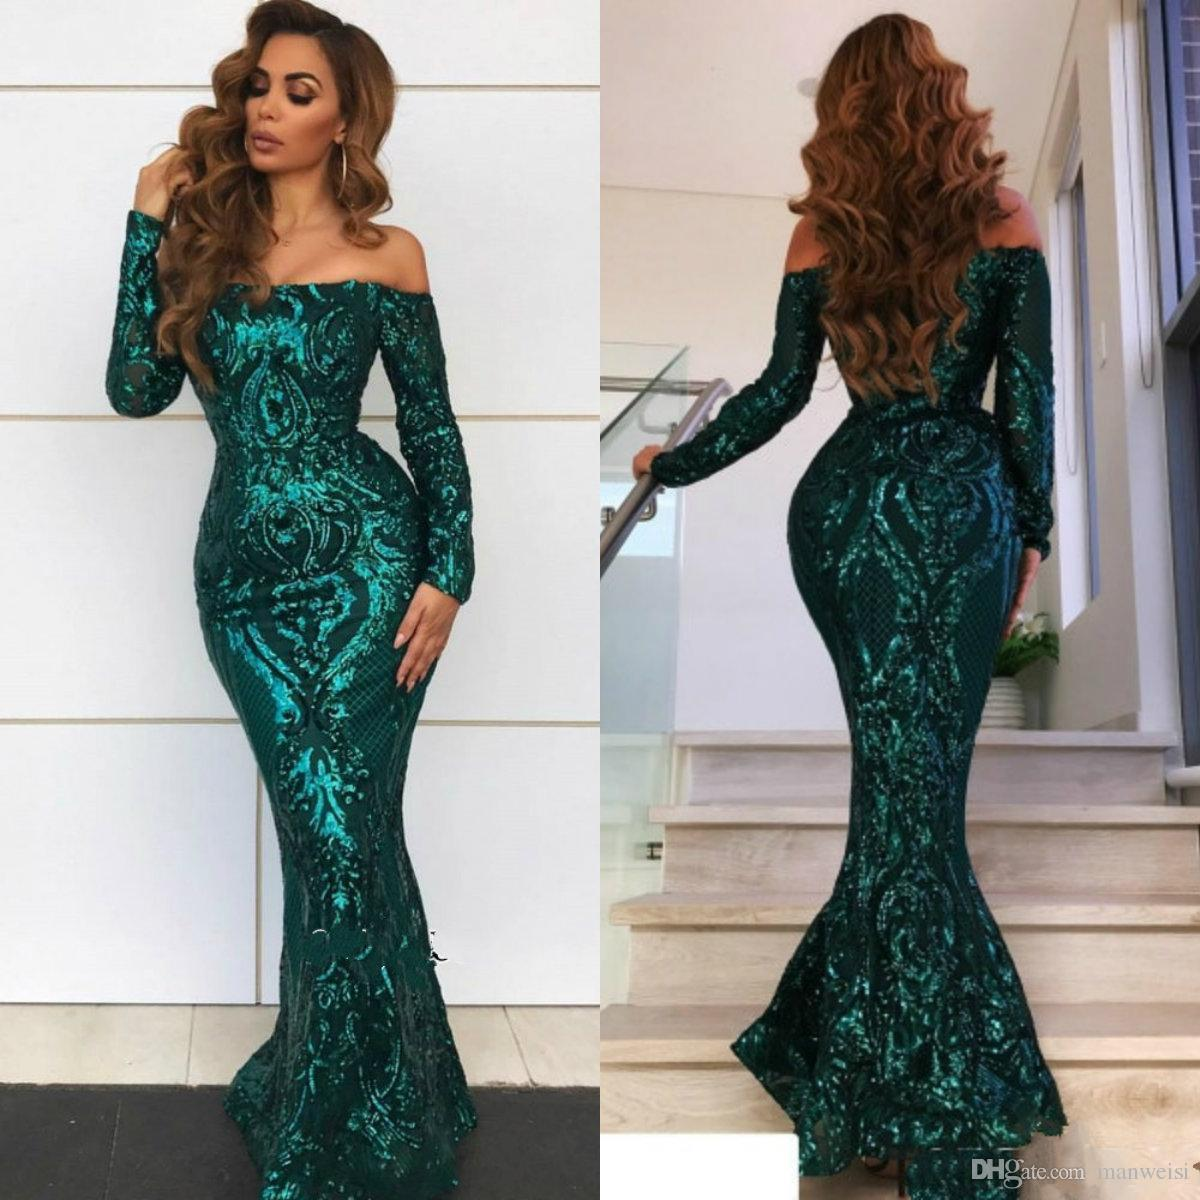 dda298f94c87f Hunter Green Mermaid Prom Dresses Off The Shoulder Long Sleeve Evening  Gowns Beaded Sequins Lace Vestidos De Fiesta Formal Party Dress Quiz Prom  Dresses Red ...